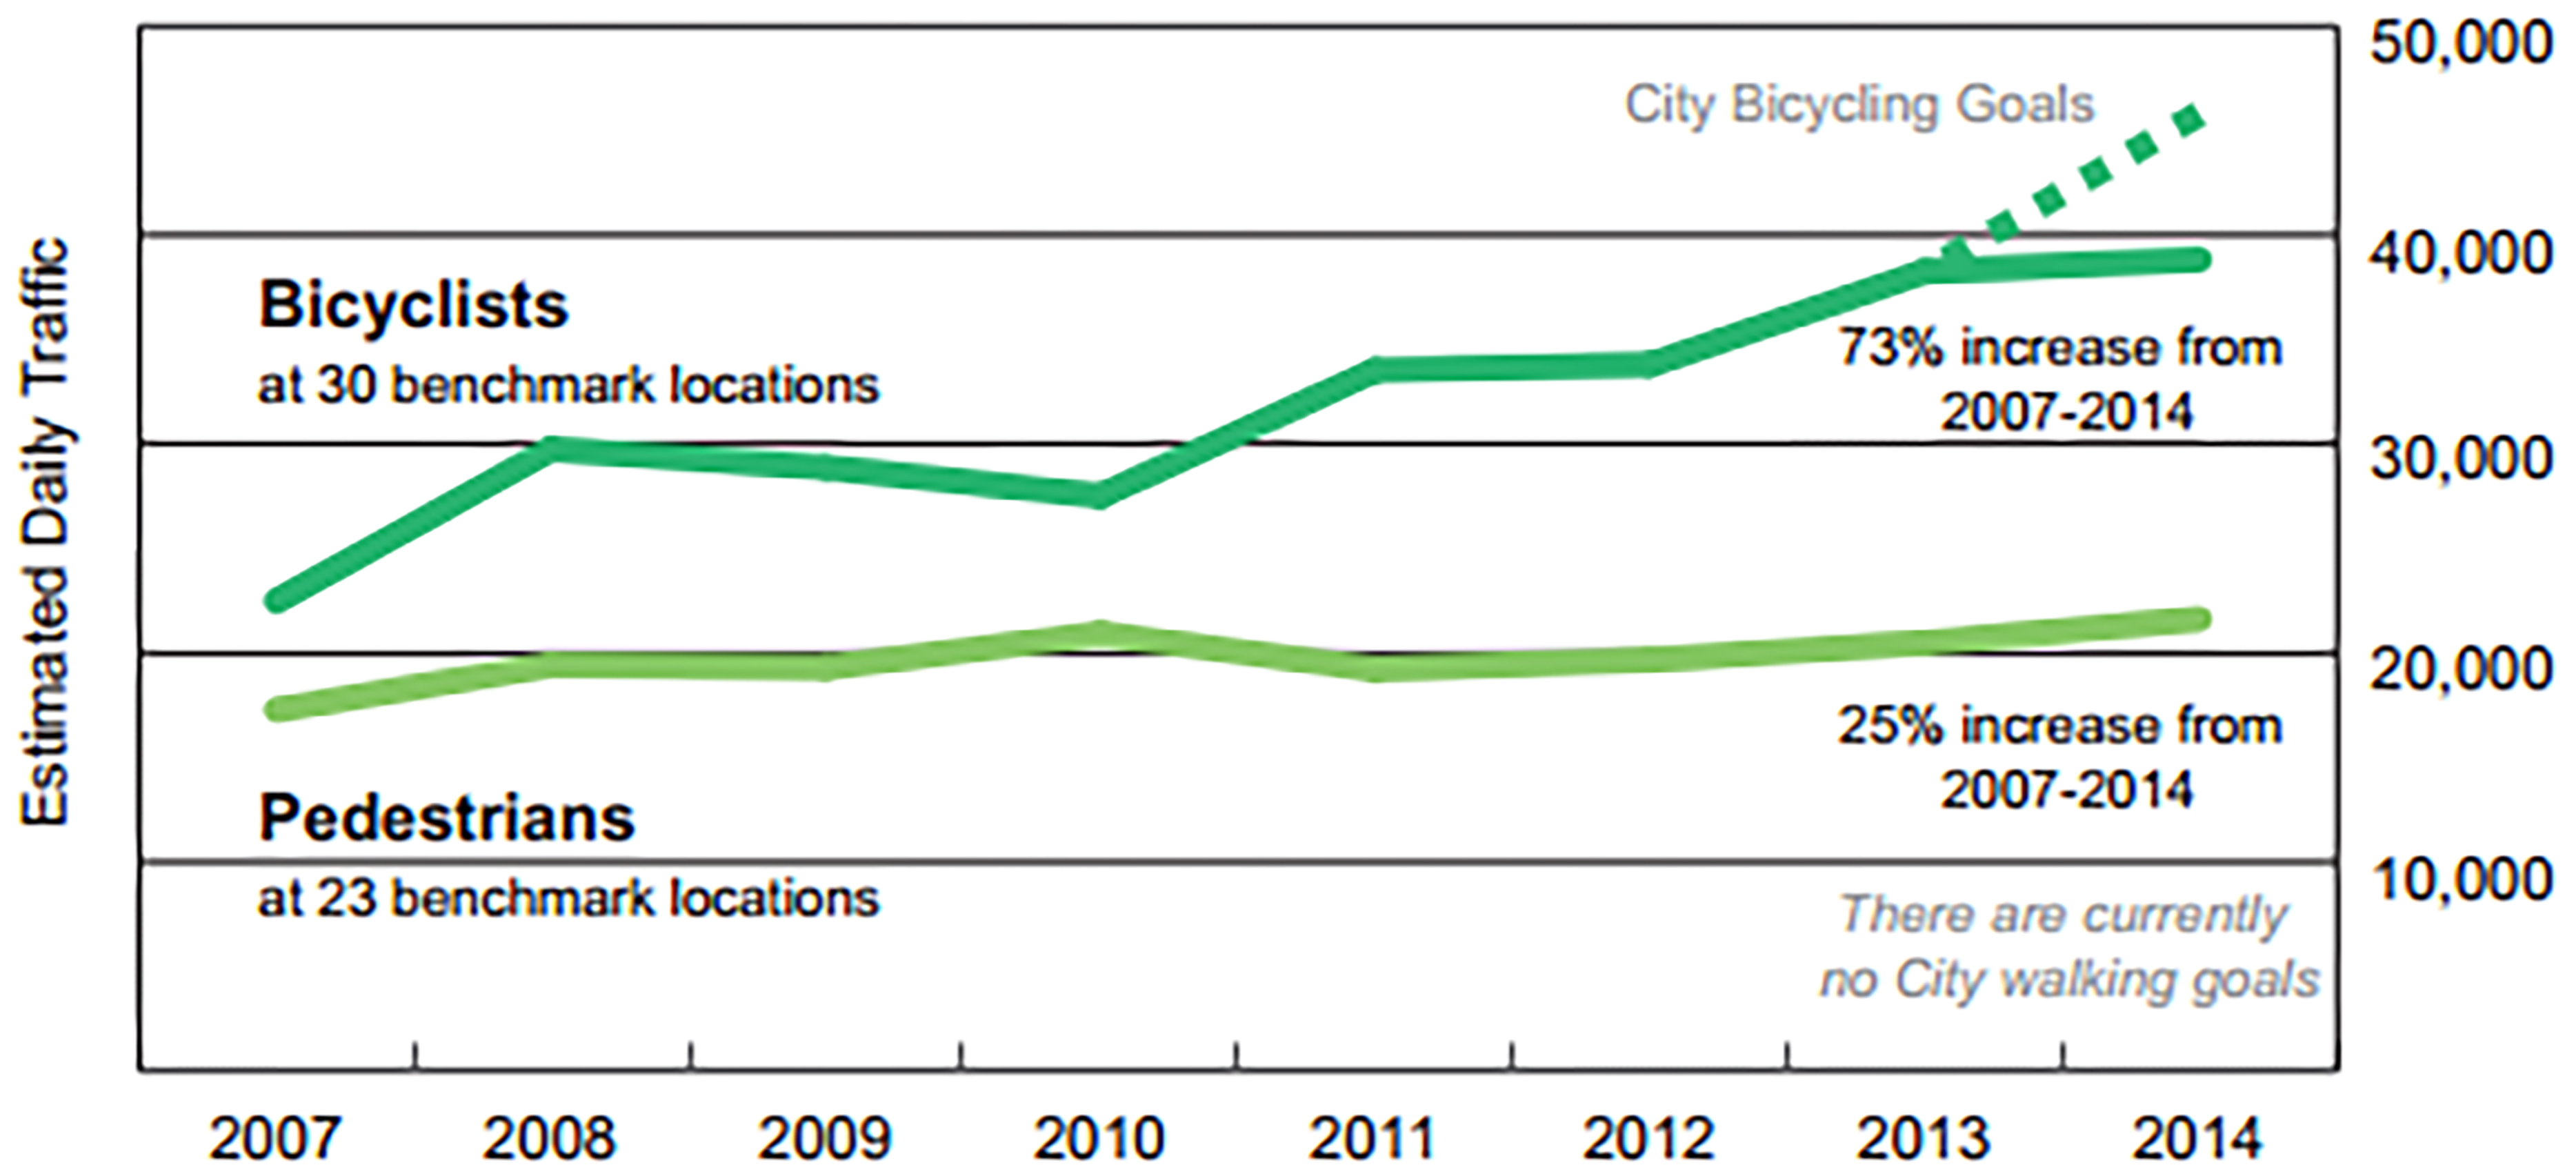 This graph shows the increase in bicycle and pedestrian traffic over the last 7 years.